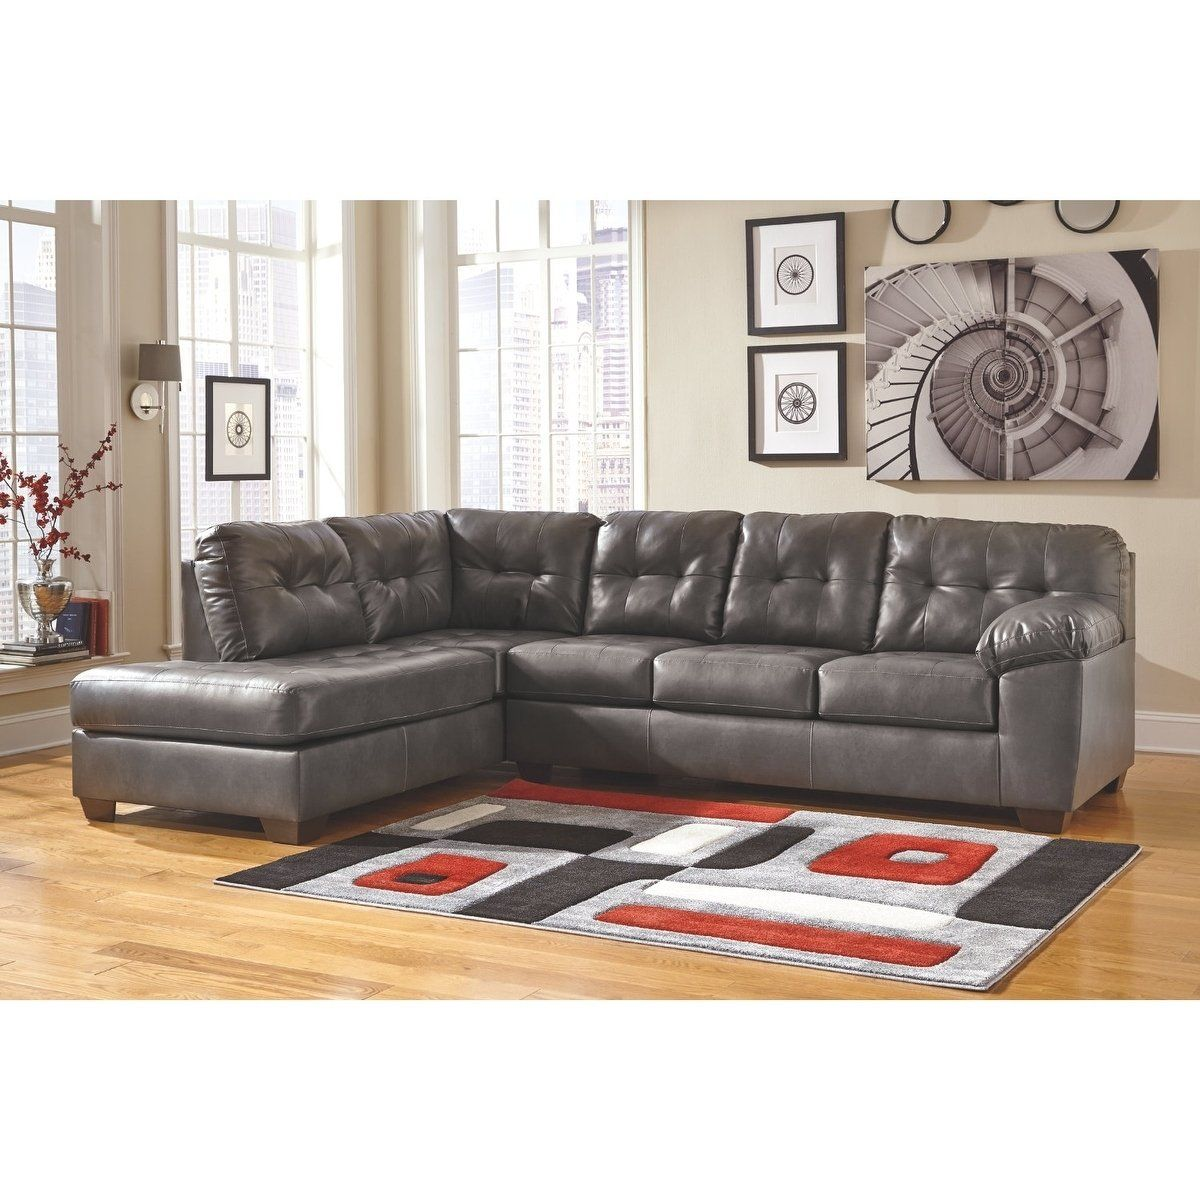 Brilliant Alliston Grey Faux Leather 2 Piece Sectional Sofa Polyester Gmtry Best Dining Table And Chair Ideas Images Gmtryco